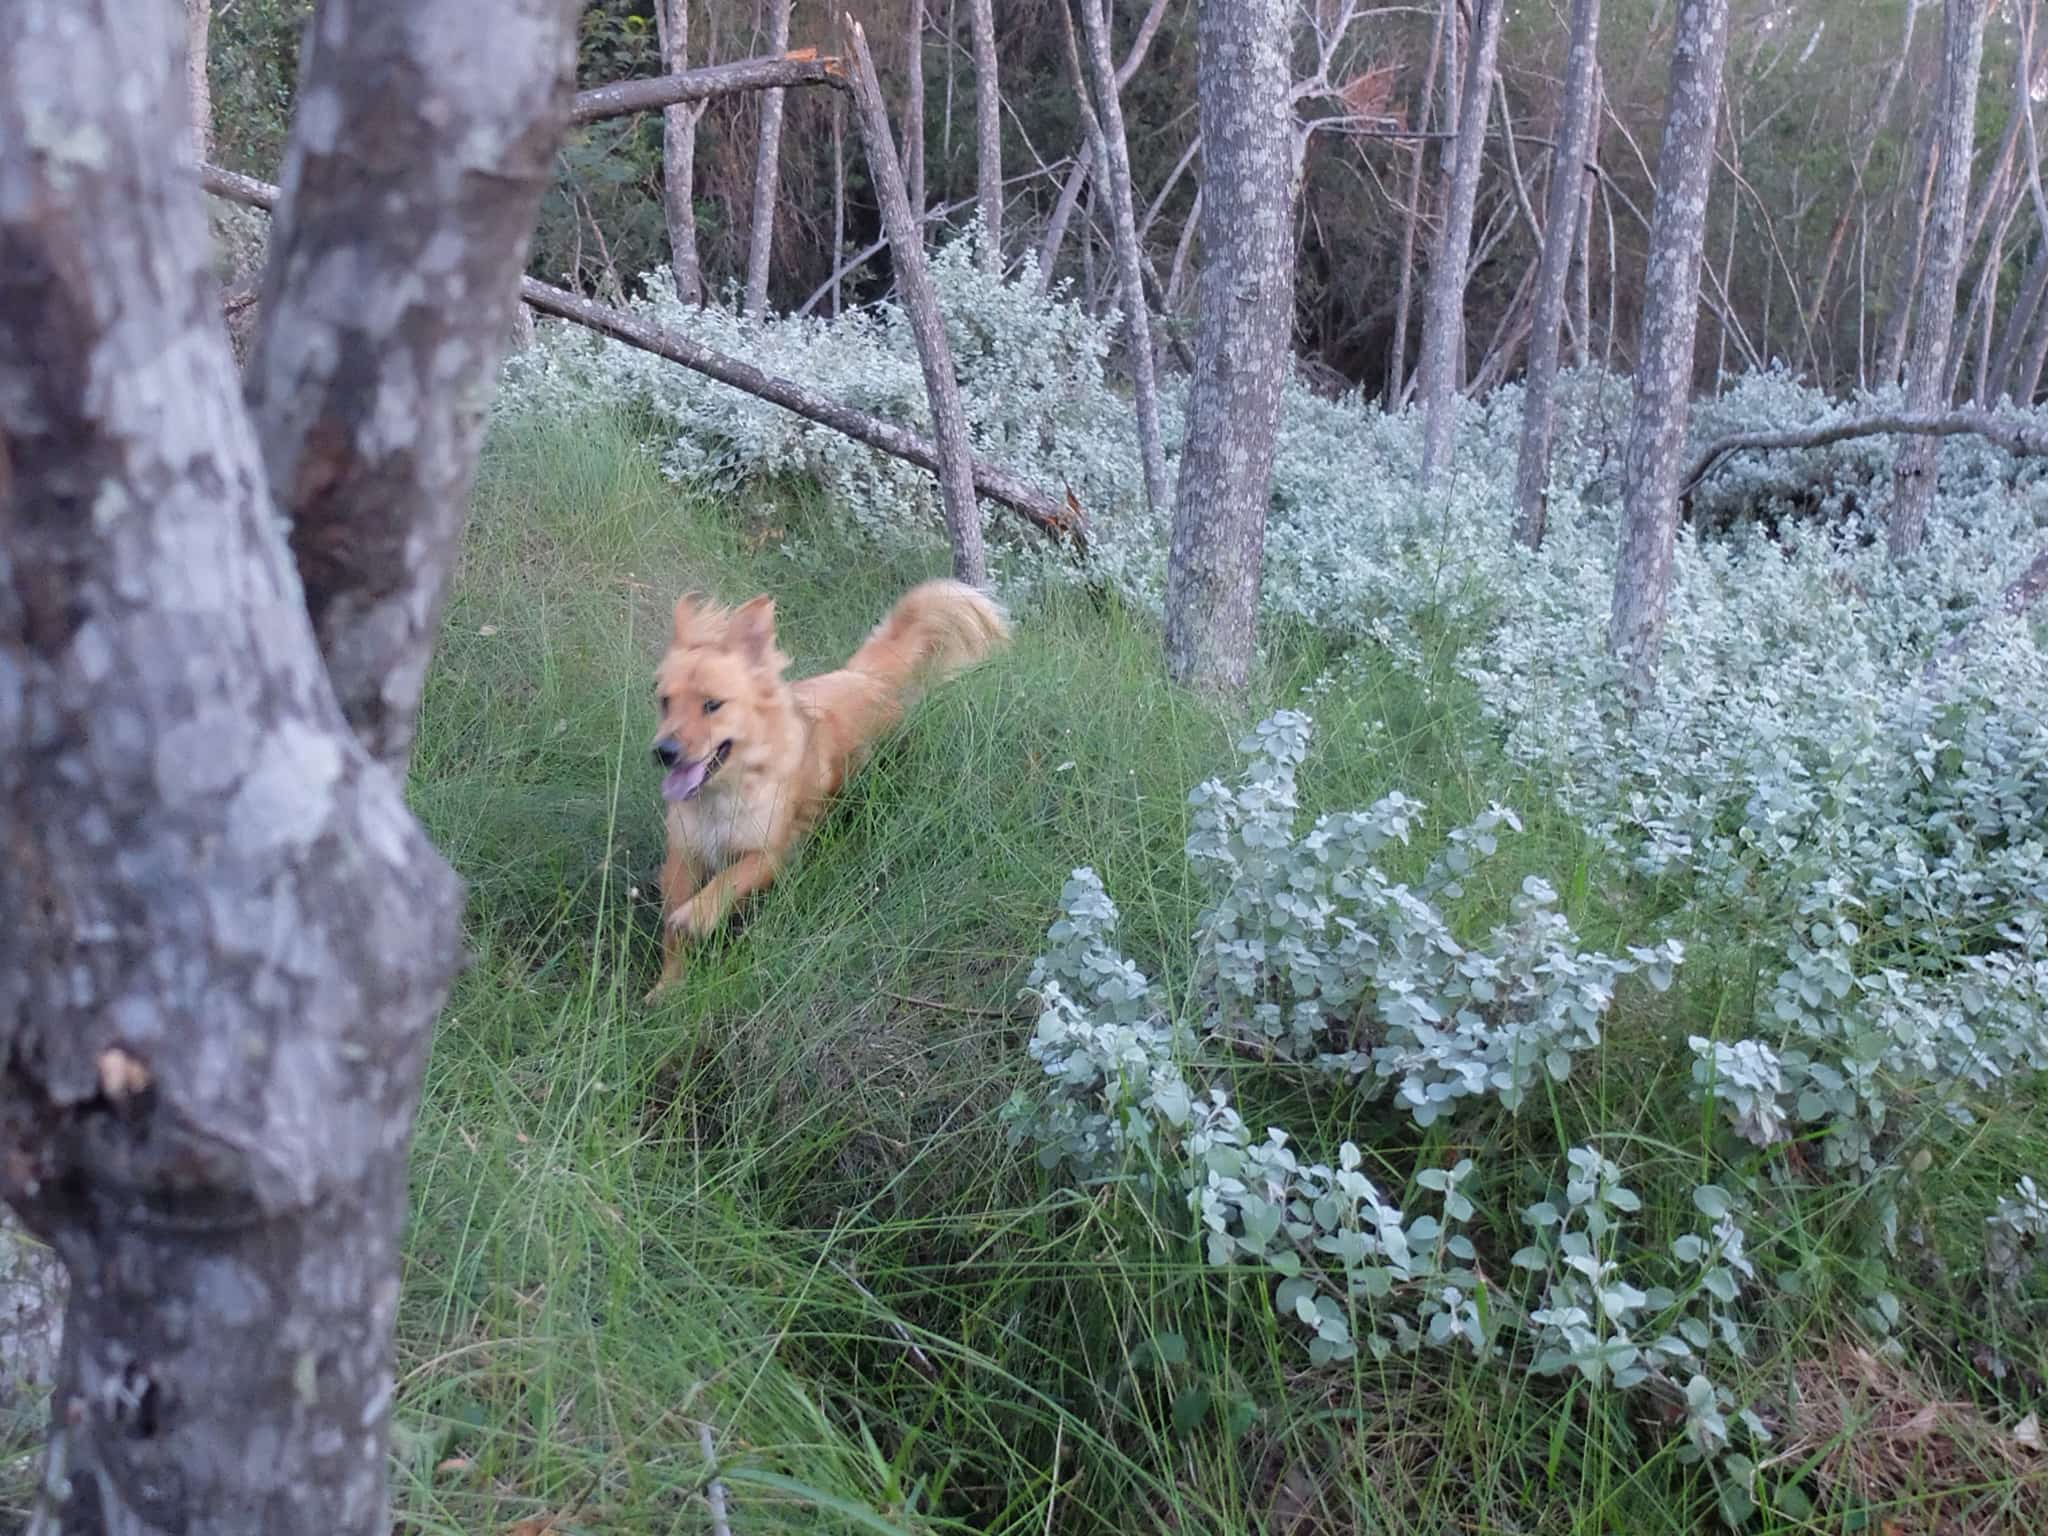 A walk in the forest is never complete without a dog or two